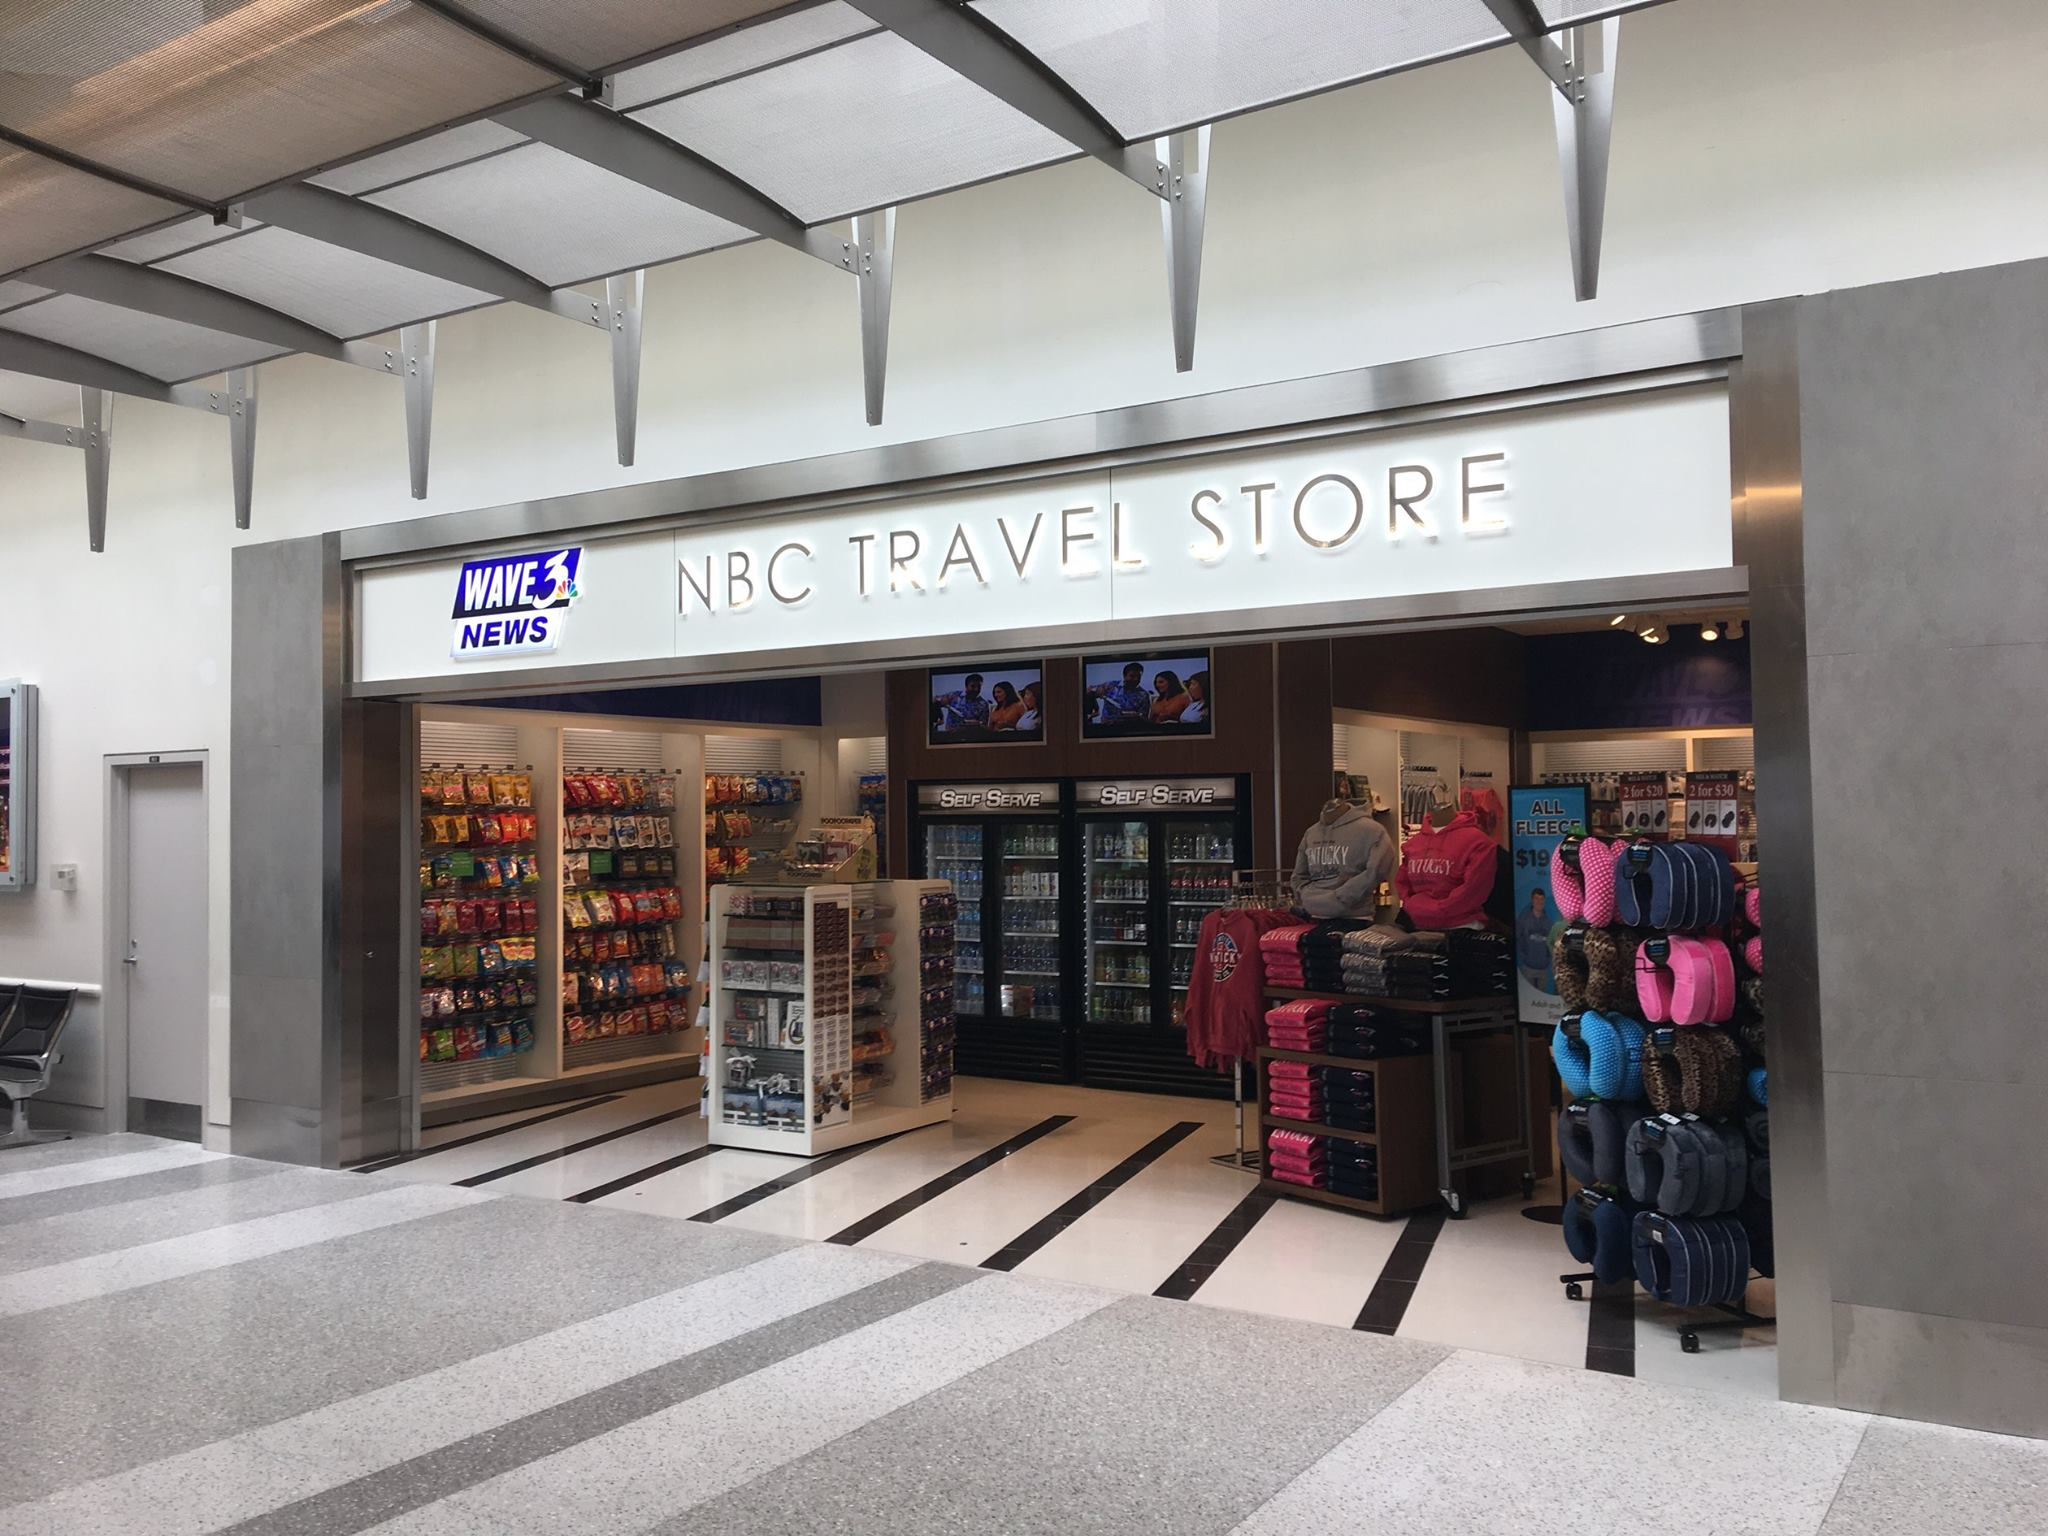 NBC TRAVEL STORE